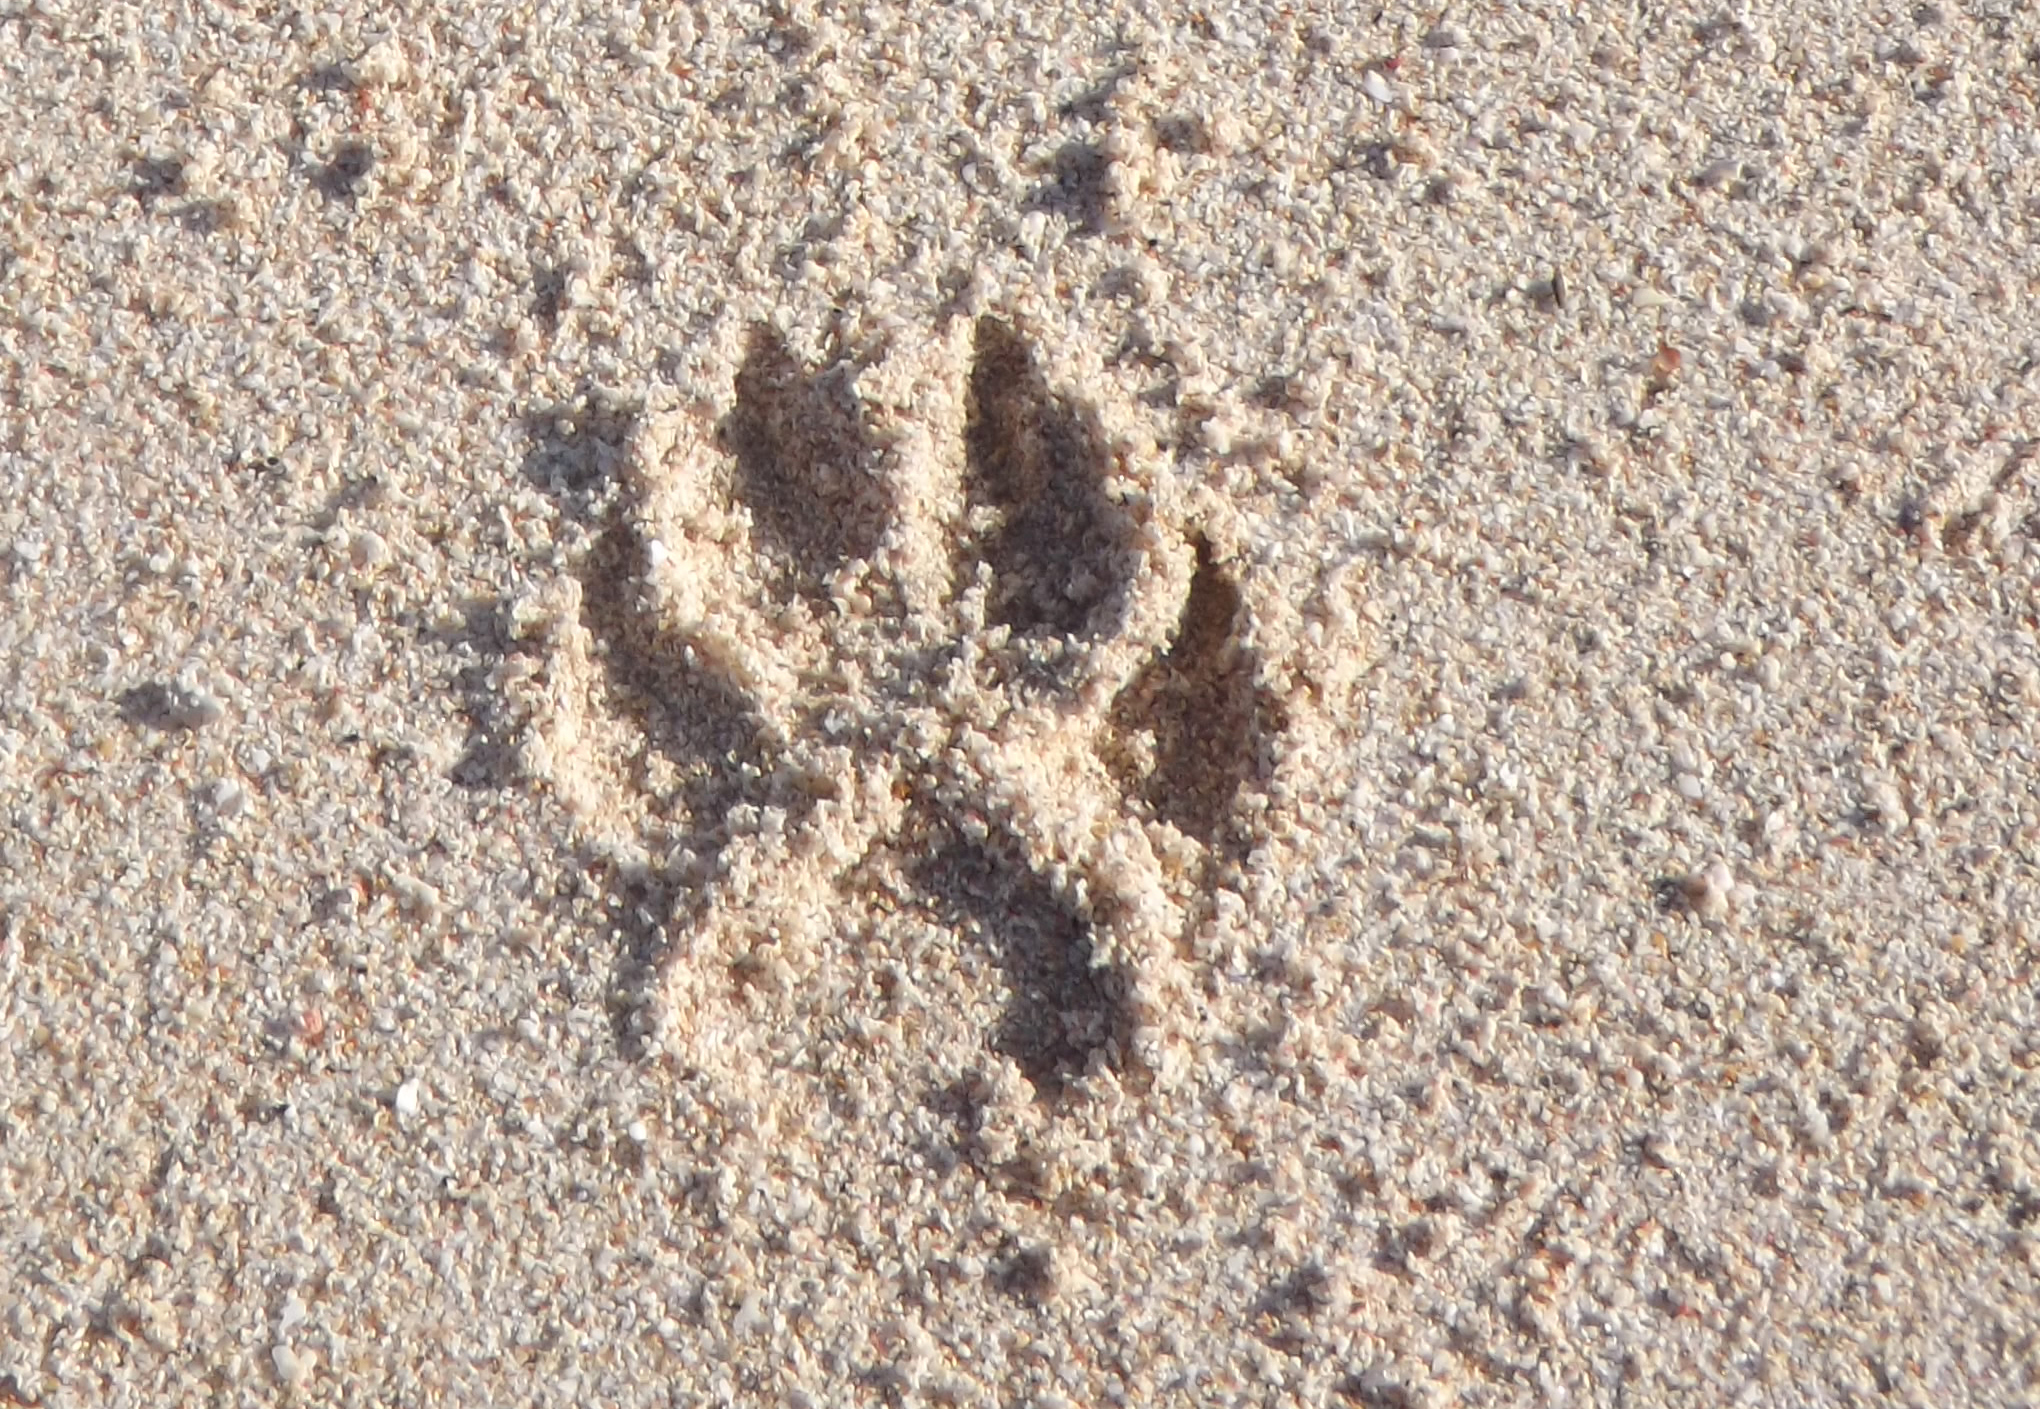 Animal track in sand